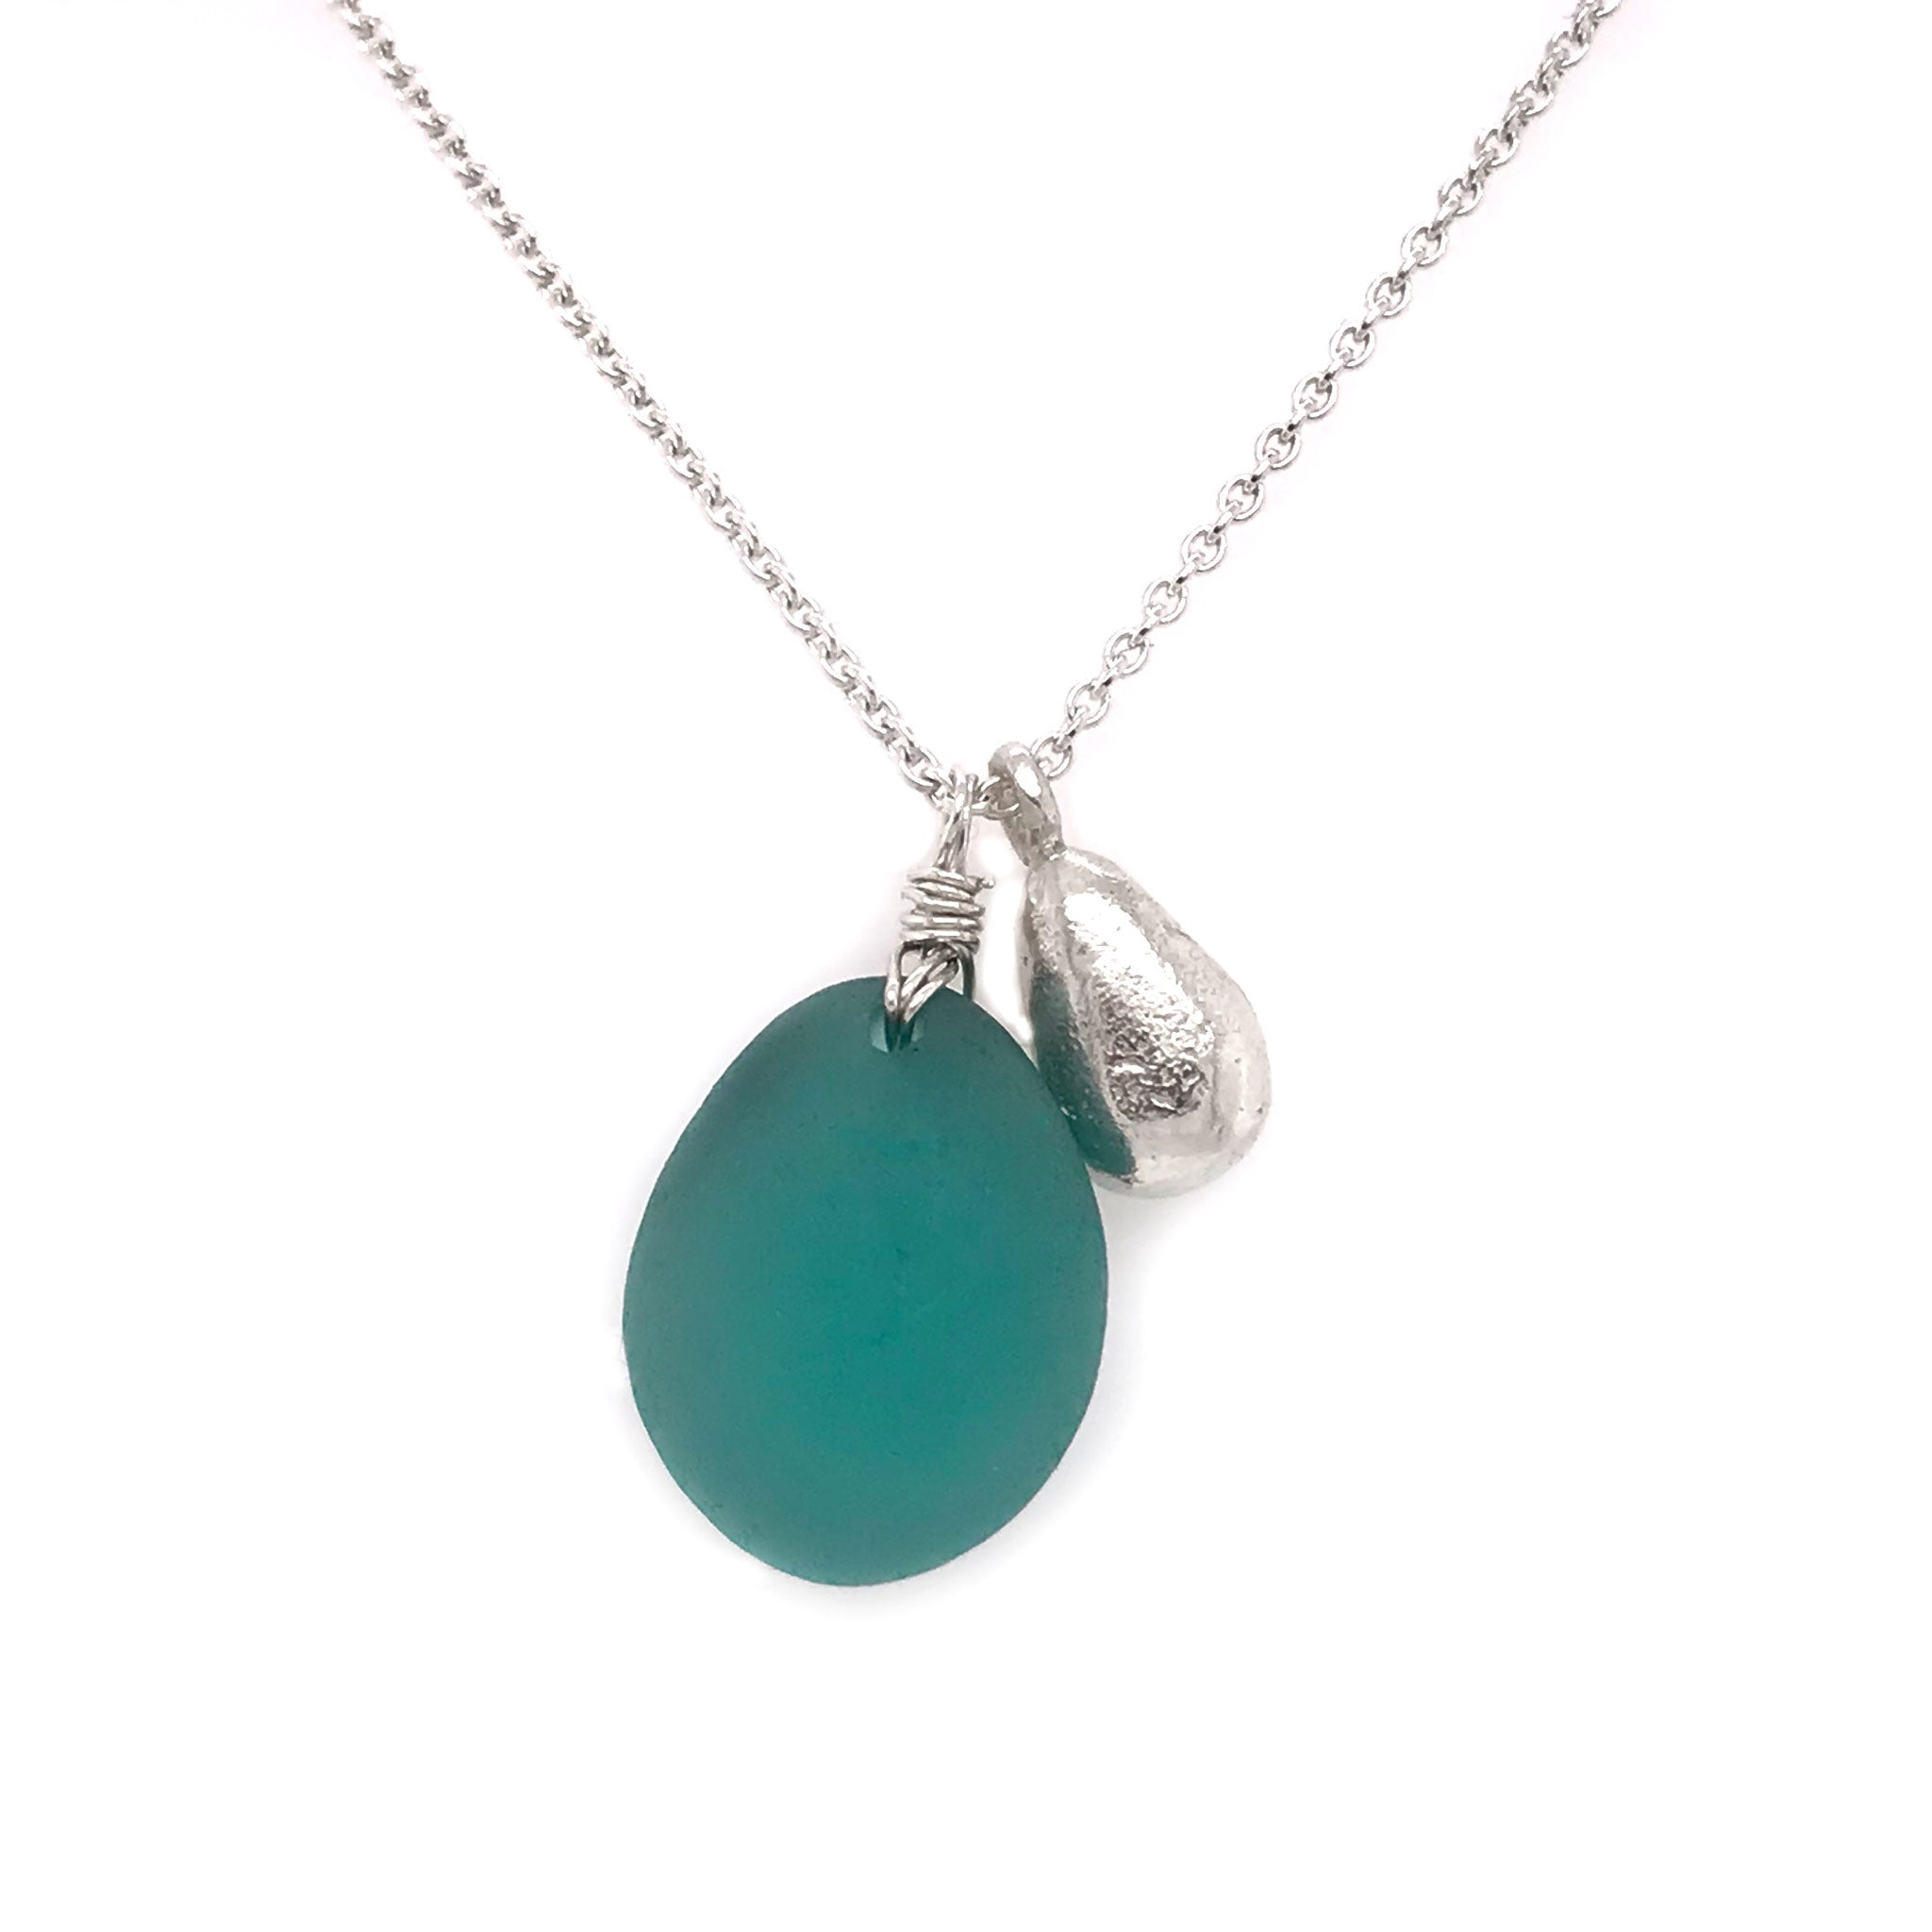 teal seaglass necklace on sterling silver chain with solid silver teardrop charm Kriket Broadhurst jewellery Christmas gift